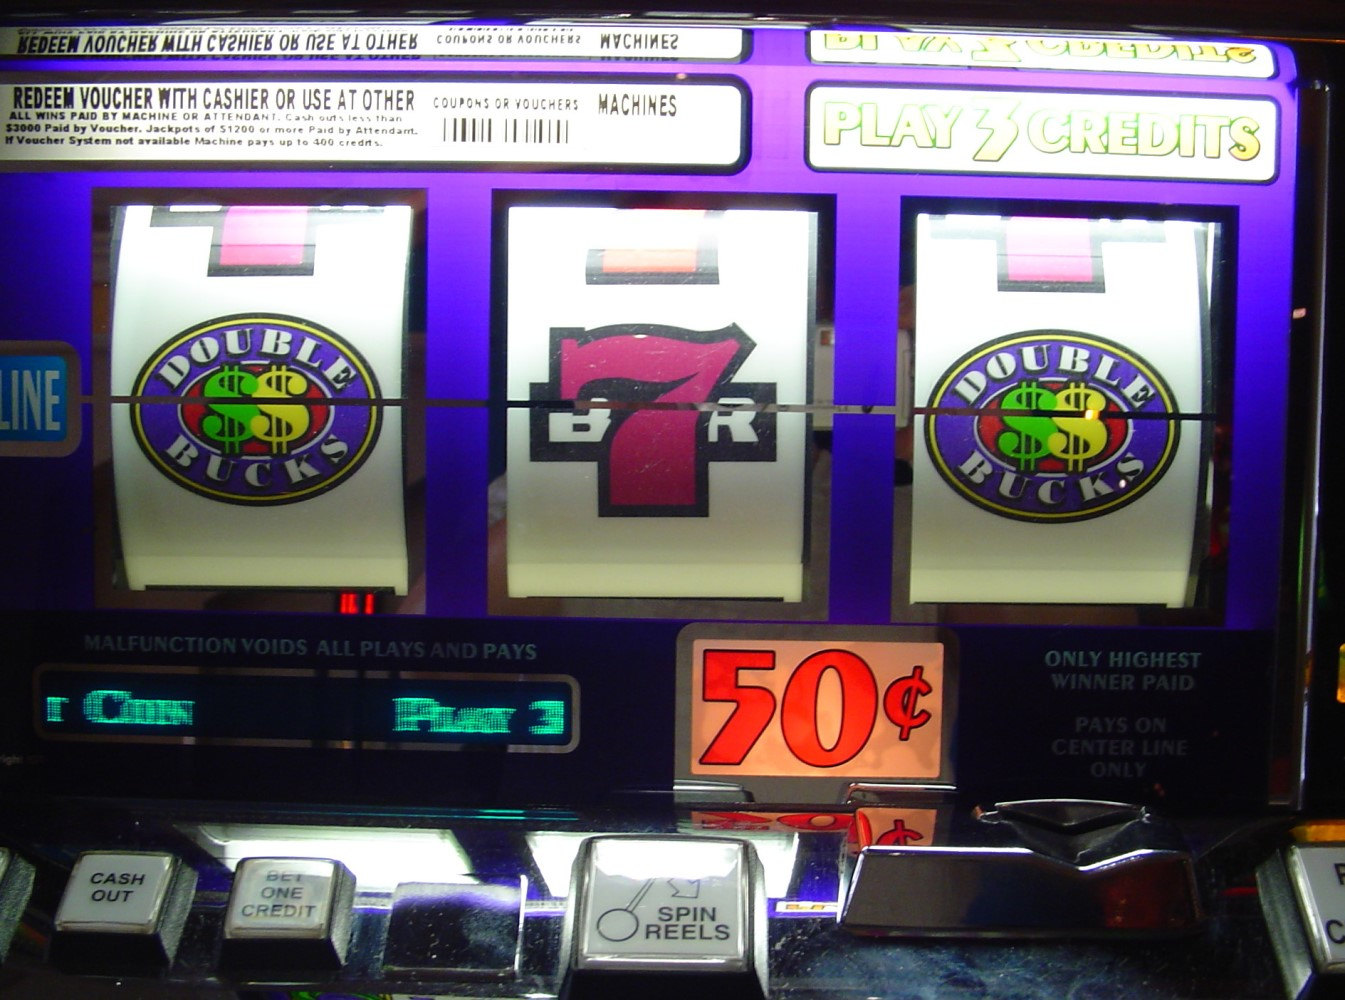 The Pennsylvania Gaming Control Board said Tuesday that slot-machine revenue in the state's casinos rose 1.1 percent in February compared with a year ago.